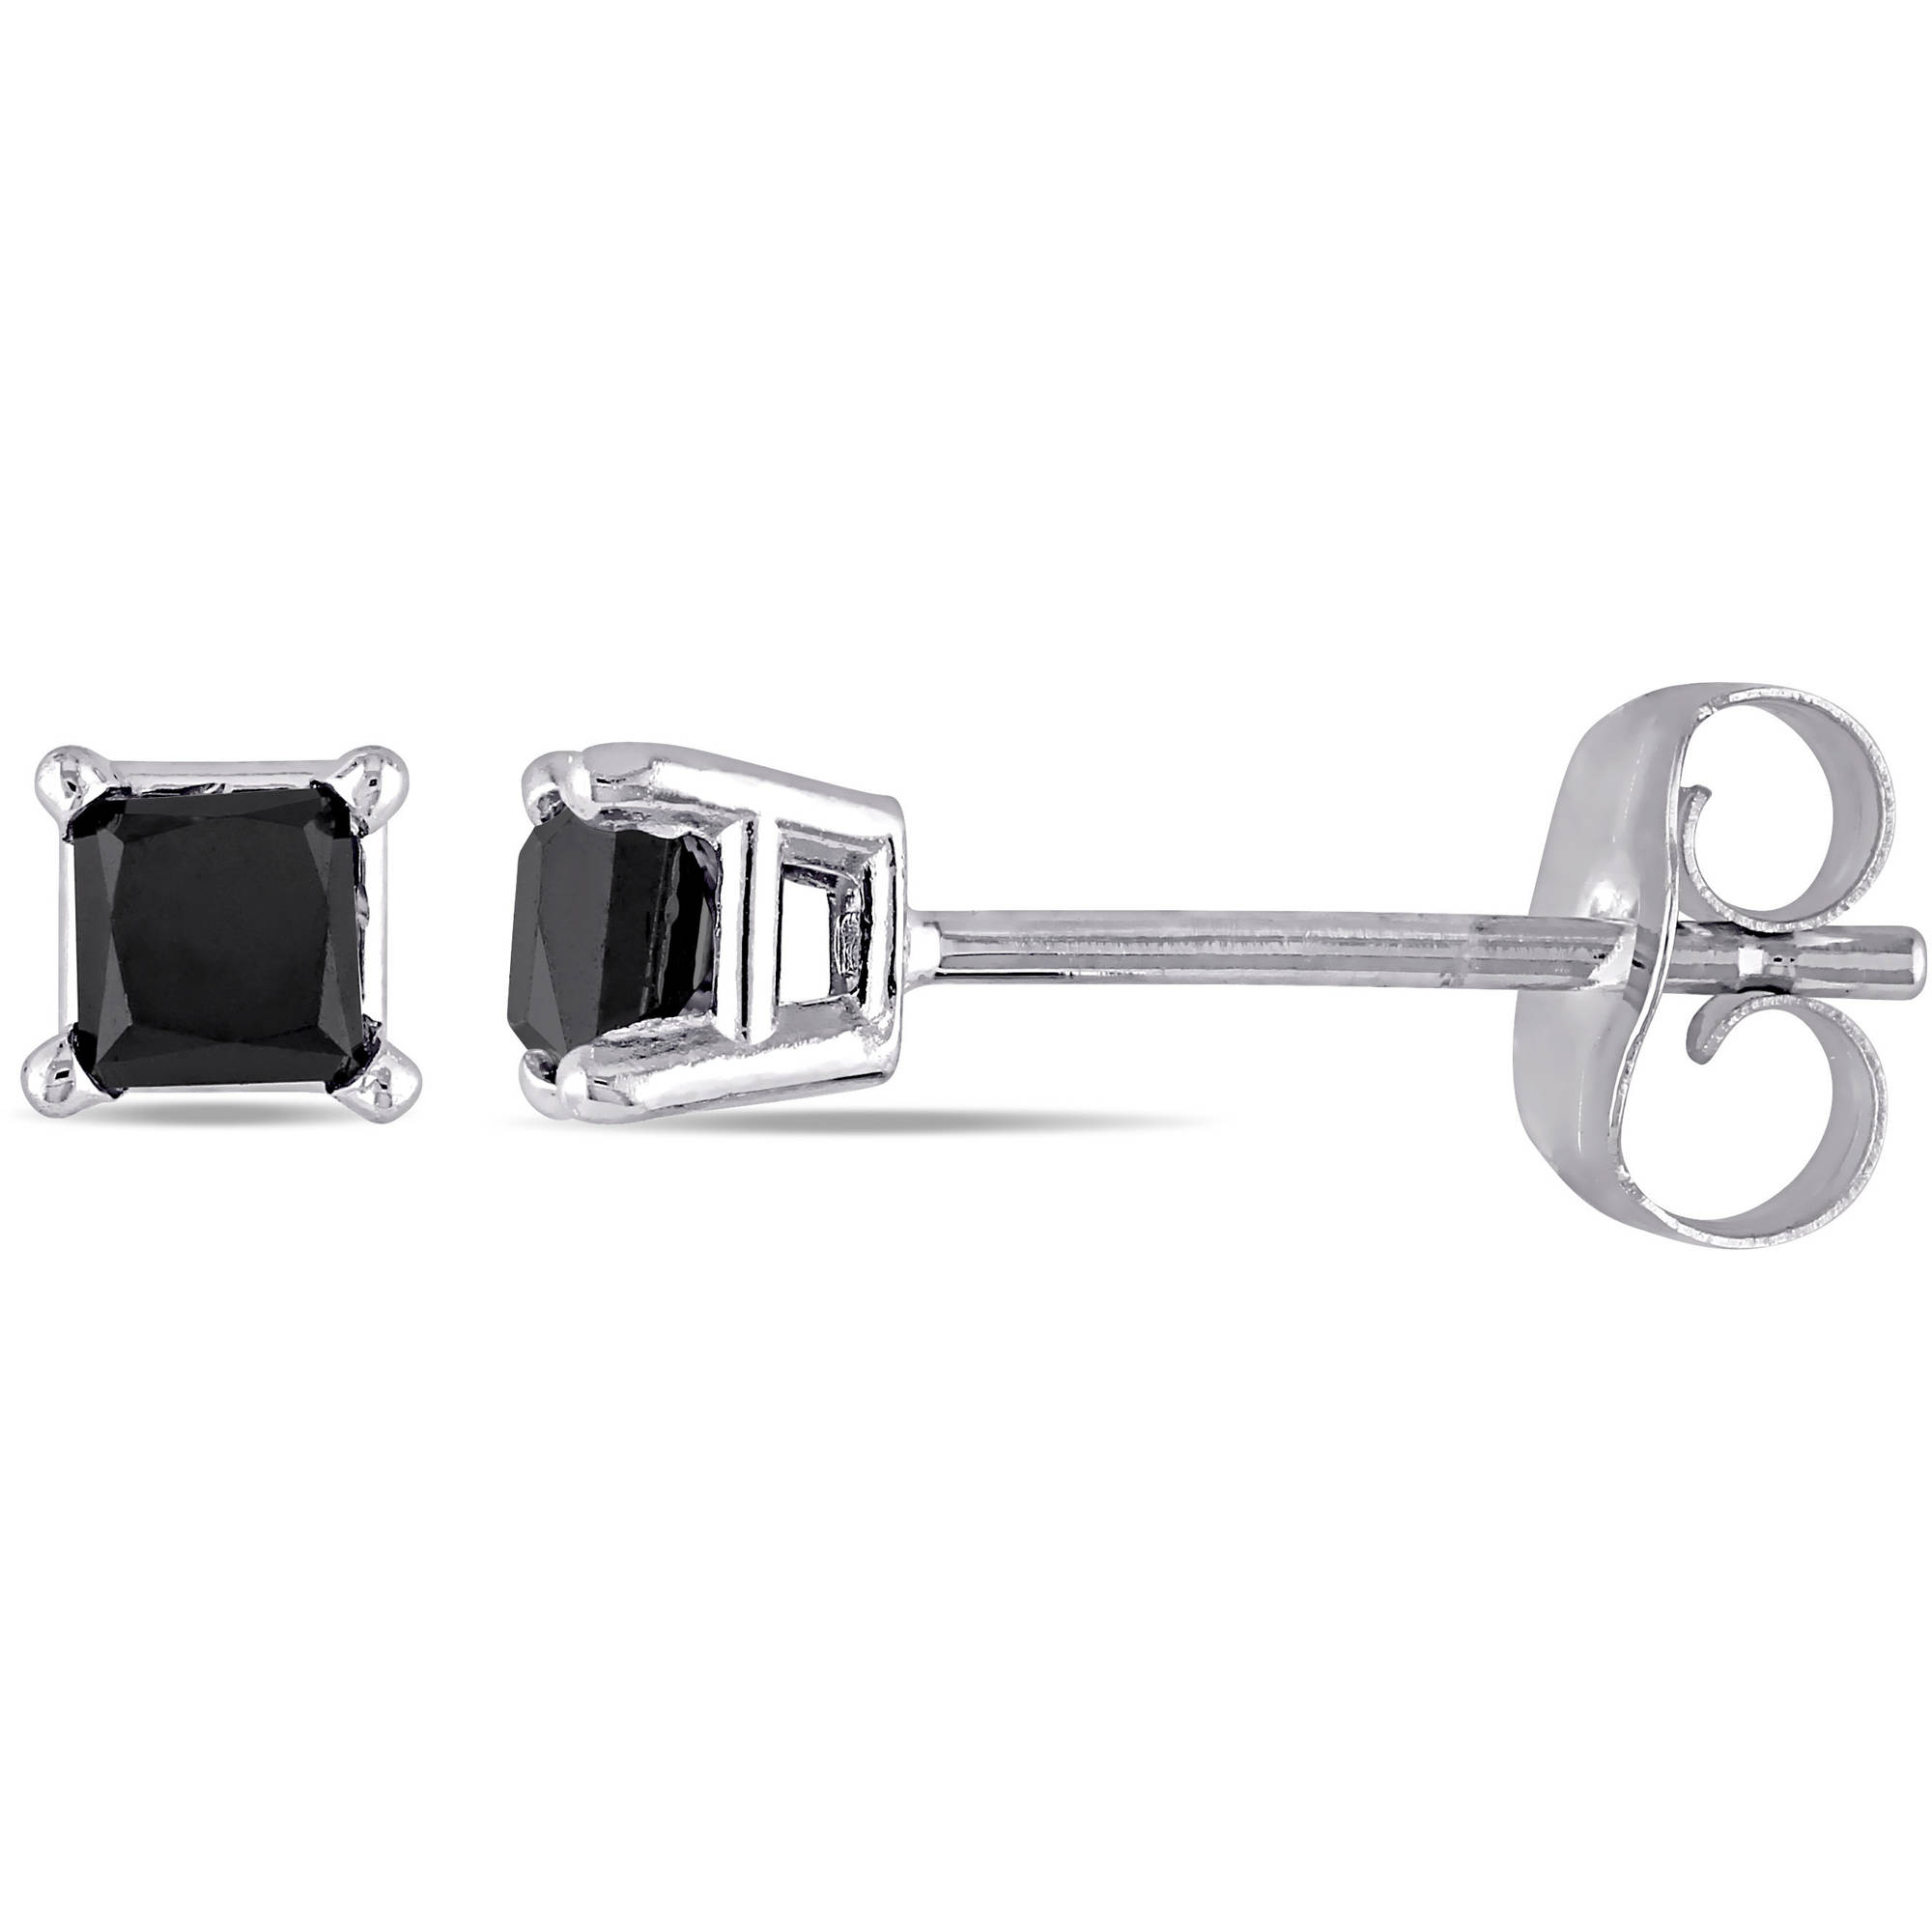 Iparis Asteria 10kt White Gold 1 Carat Princess Cut Black Diamond Solitaire Stud Earrings 4mm